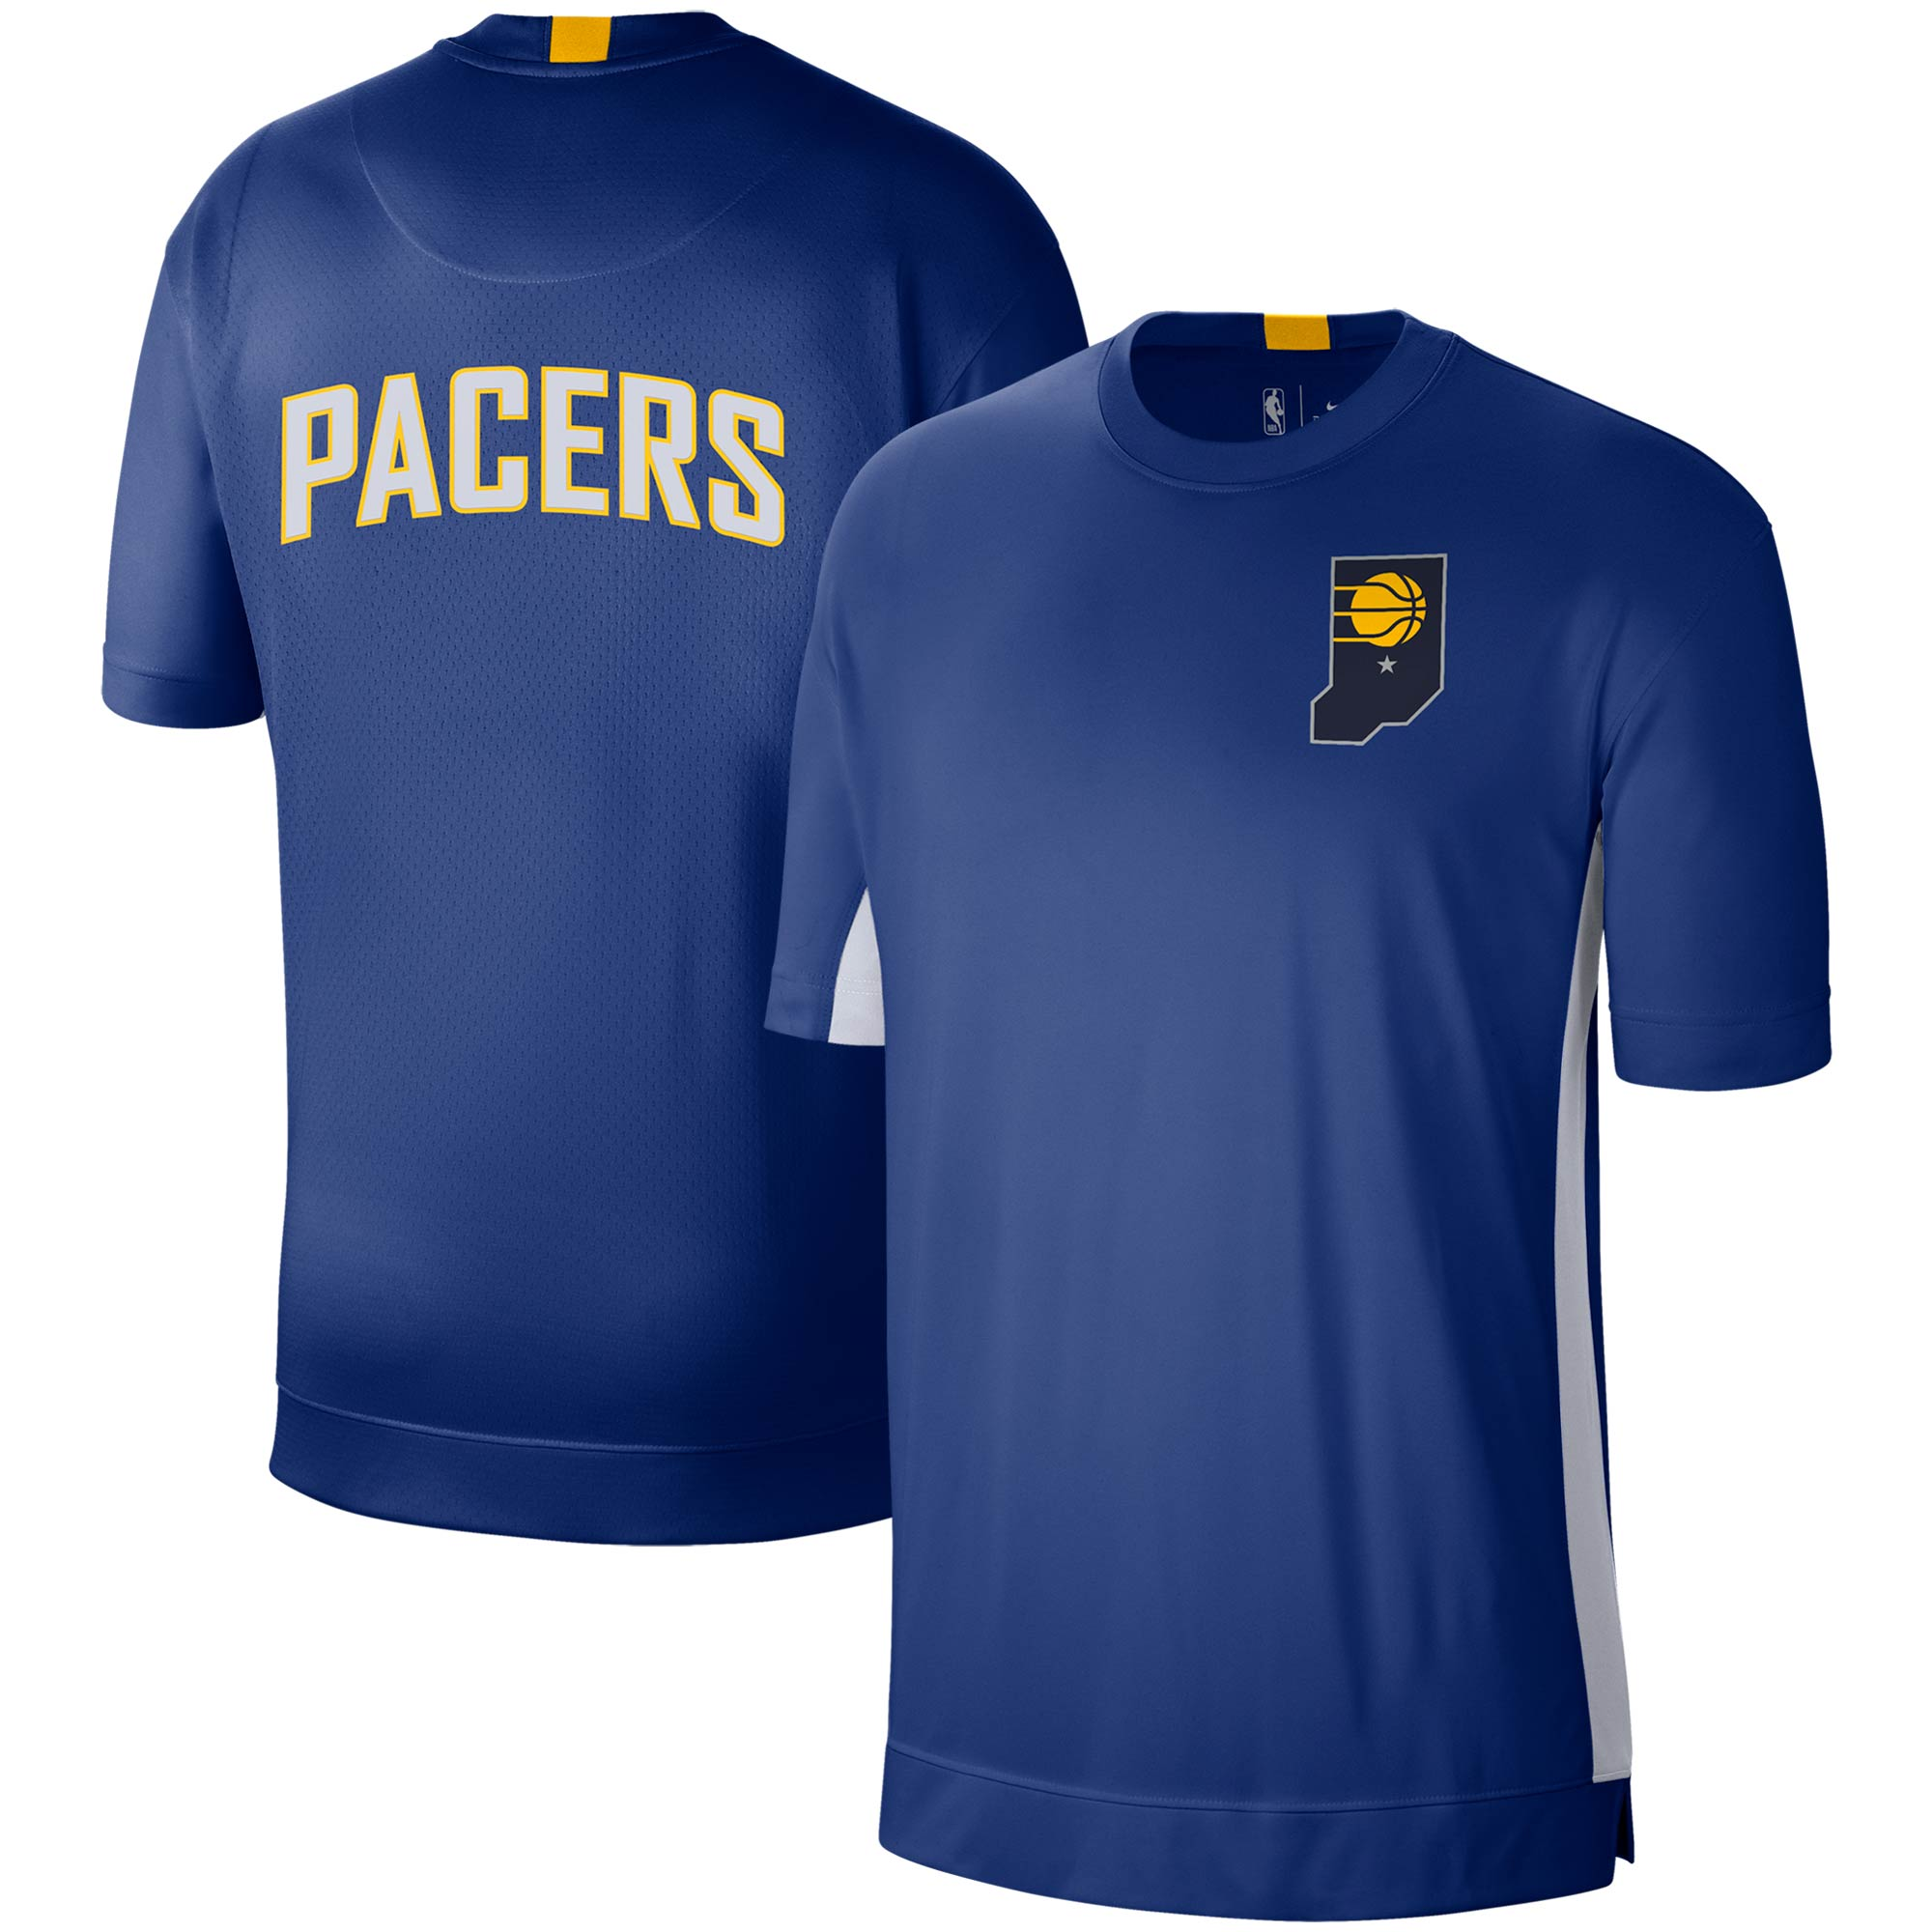 Indiana Pacers Nike City Edition 2.0 Shooting Performance T-Shirt - Blue/White